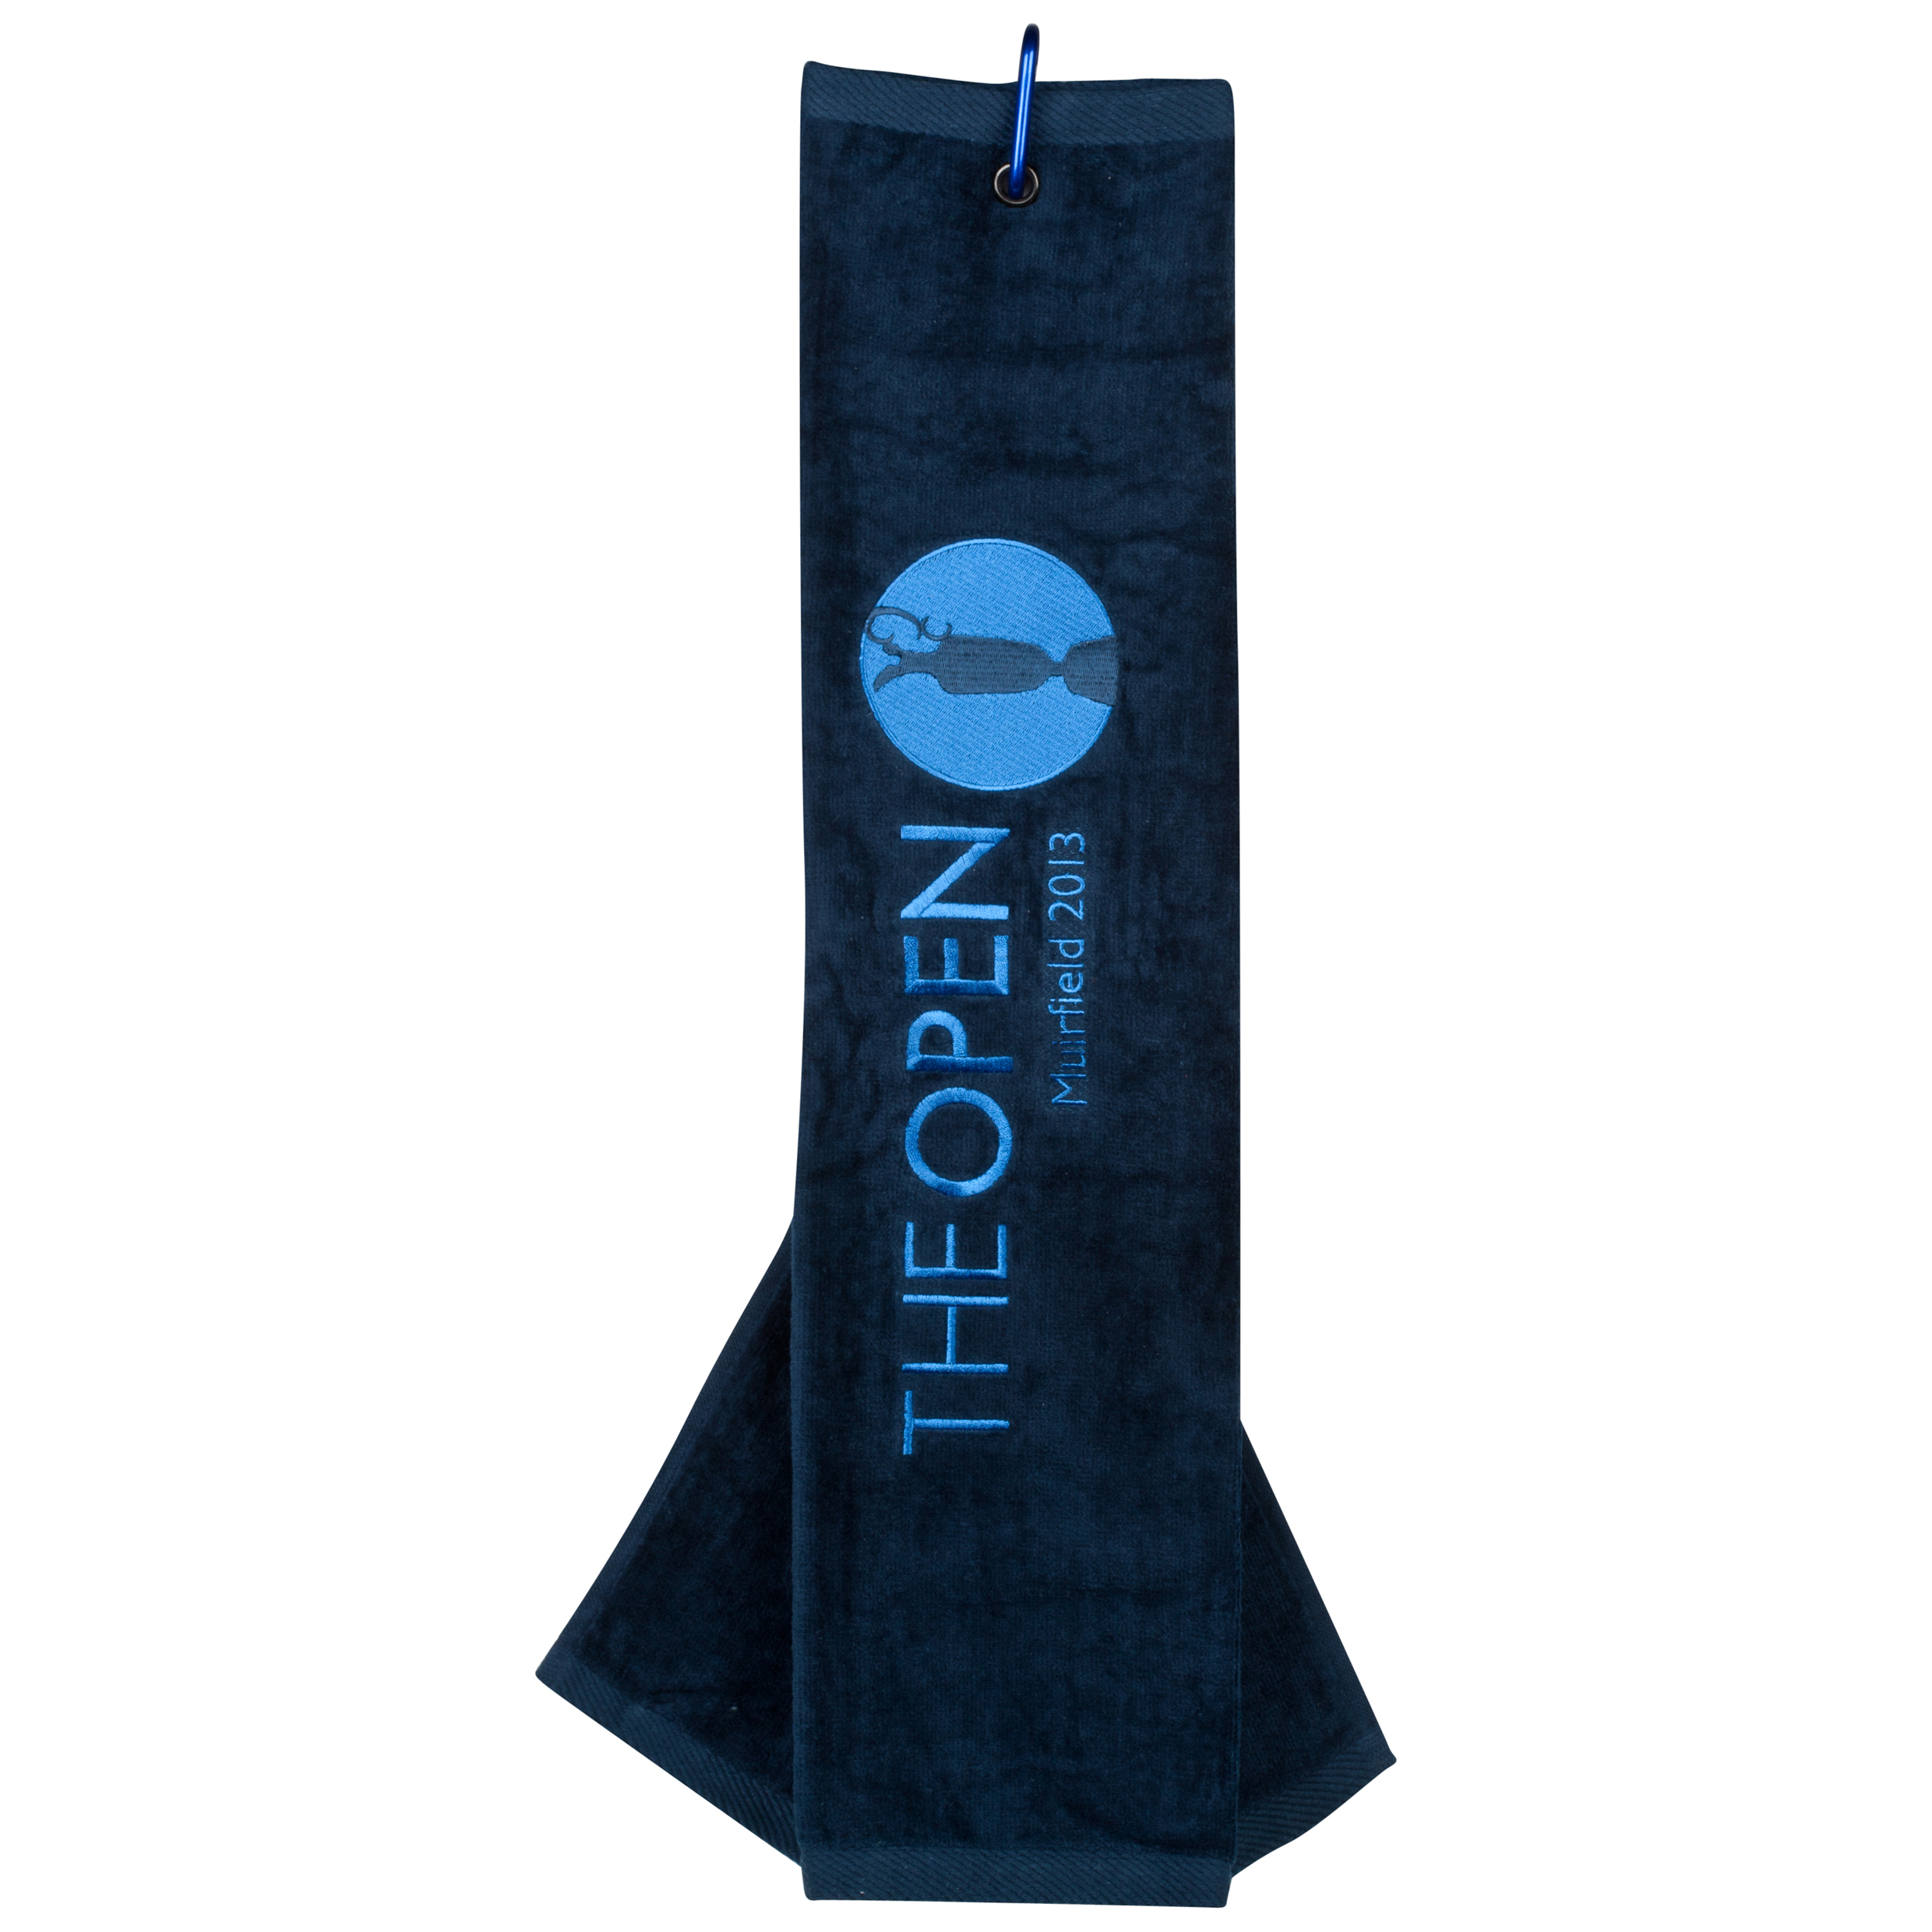 The Open Championship 2013 Muirfield Tri Fold Towel Navy